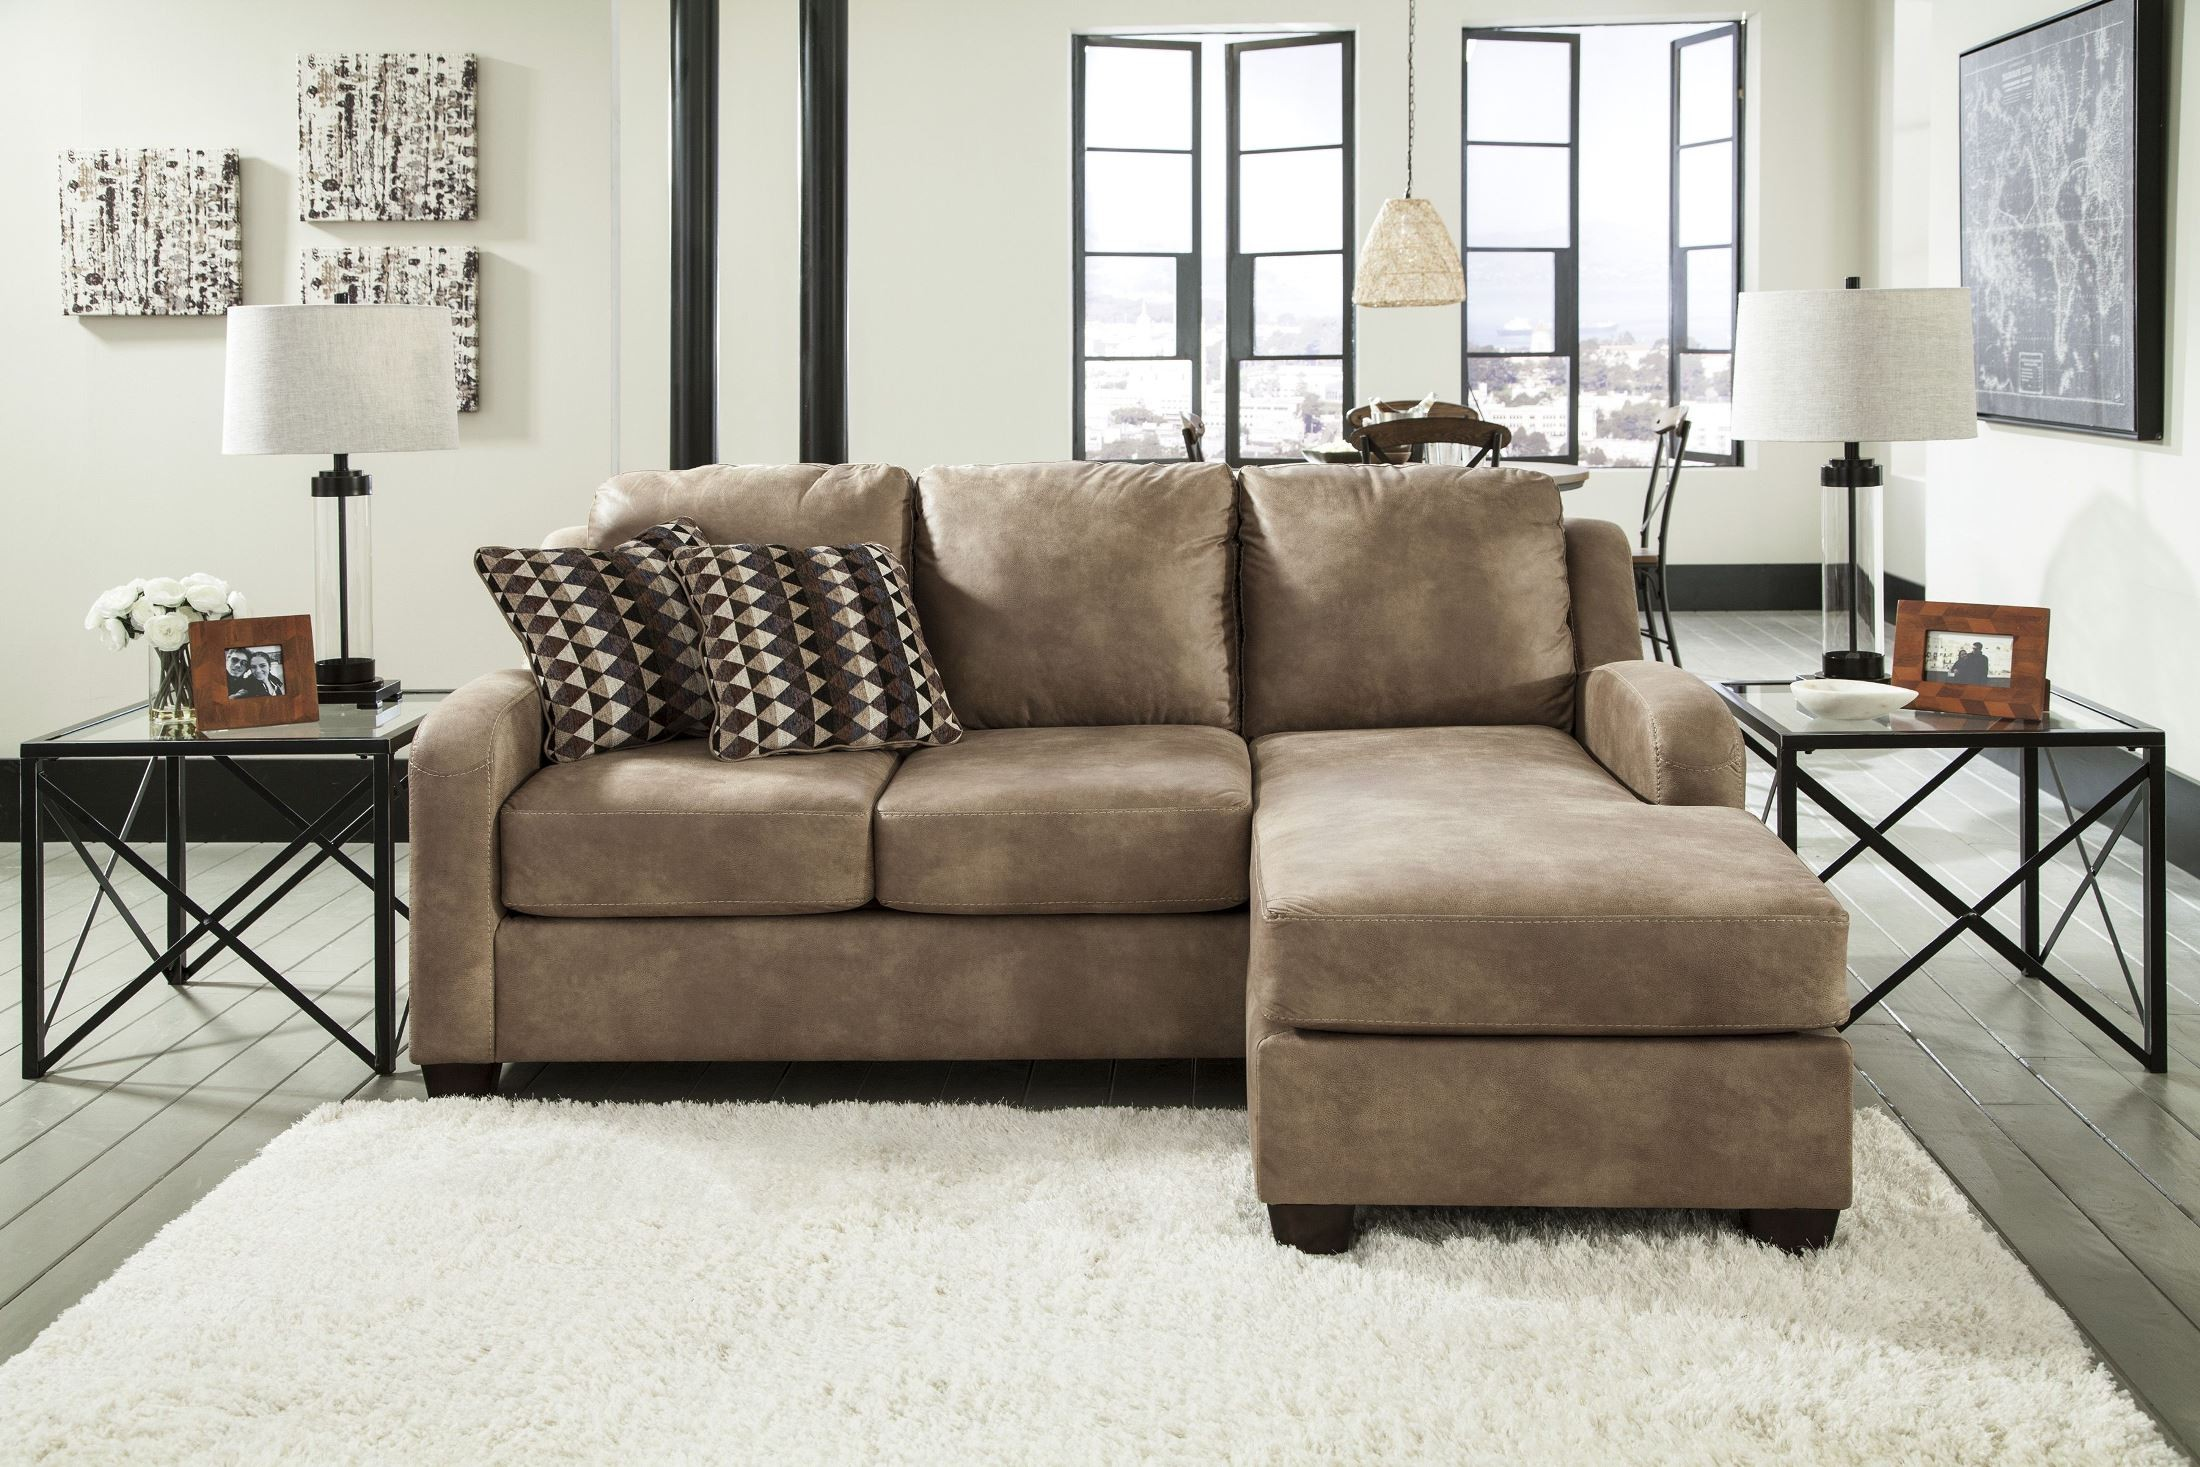 Alturo dune sofa chaise from ashley 6000318 coleman for Chaise lounge ashley furniture